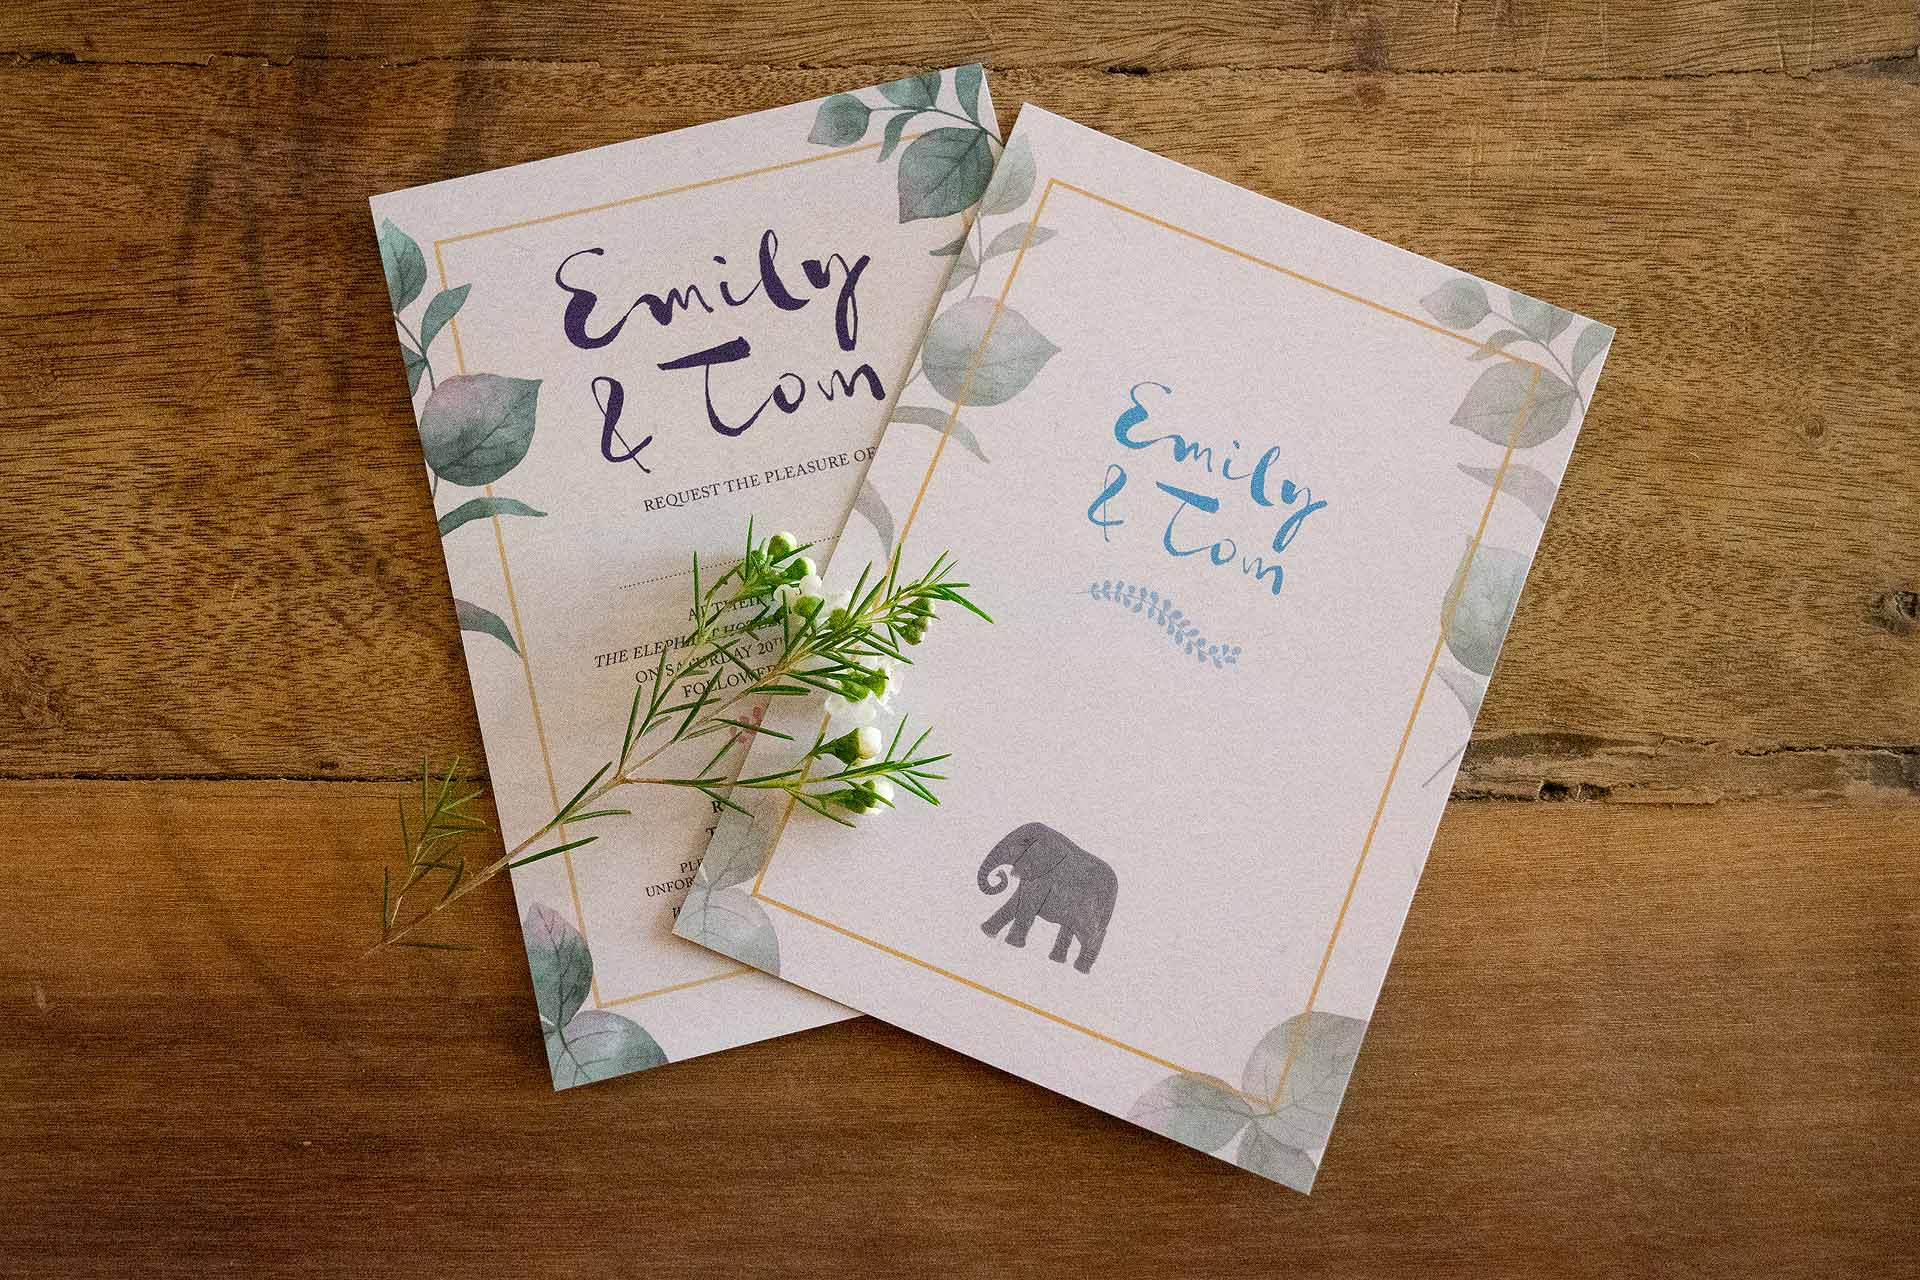 Emily and Tom's Wedding Invitations